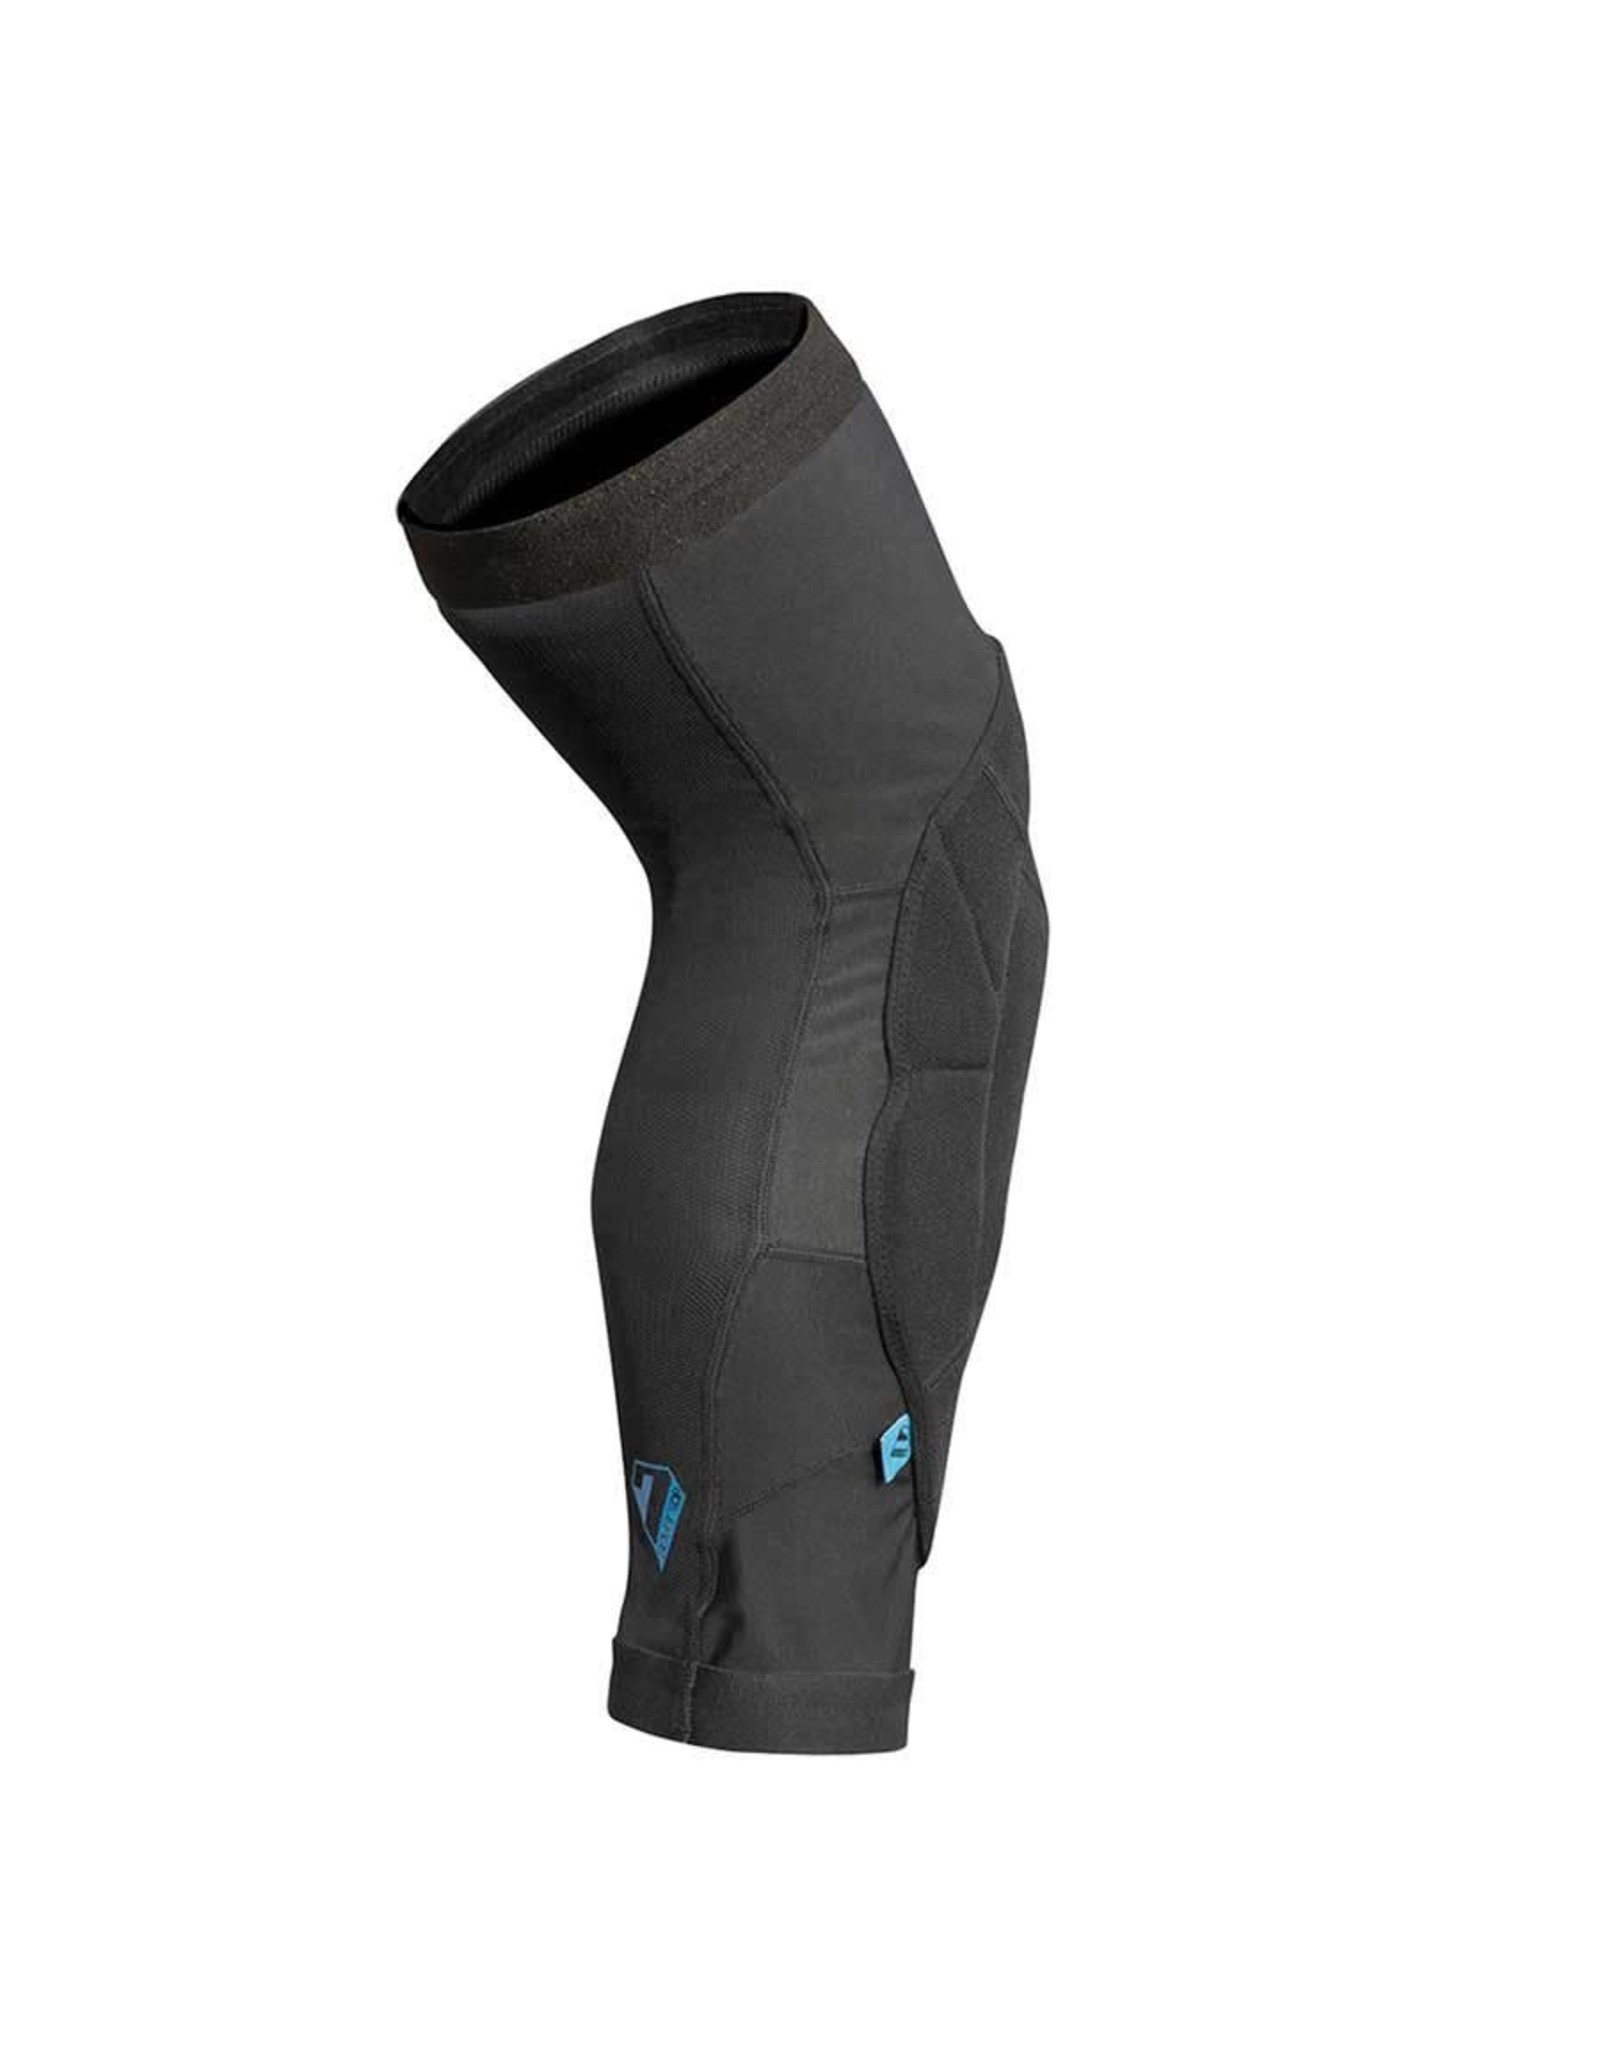 7iDP 7iDP Sam Hill, Knee Guard, Black, Pair